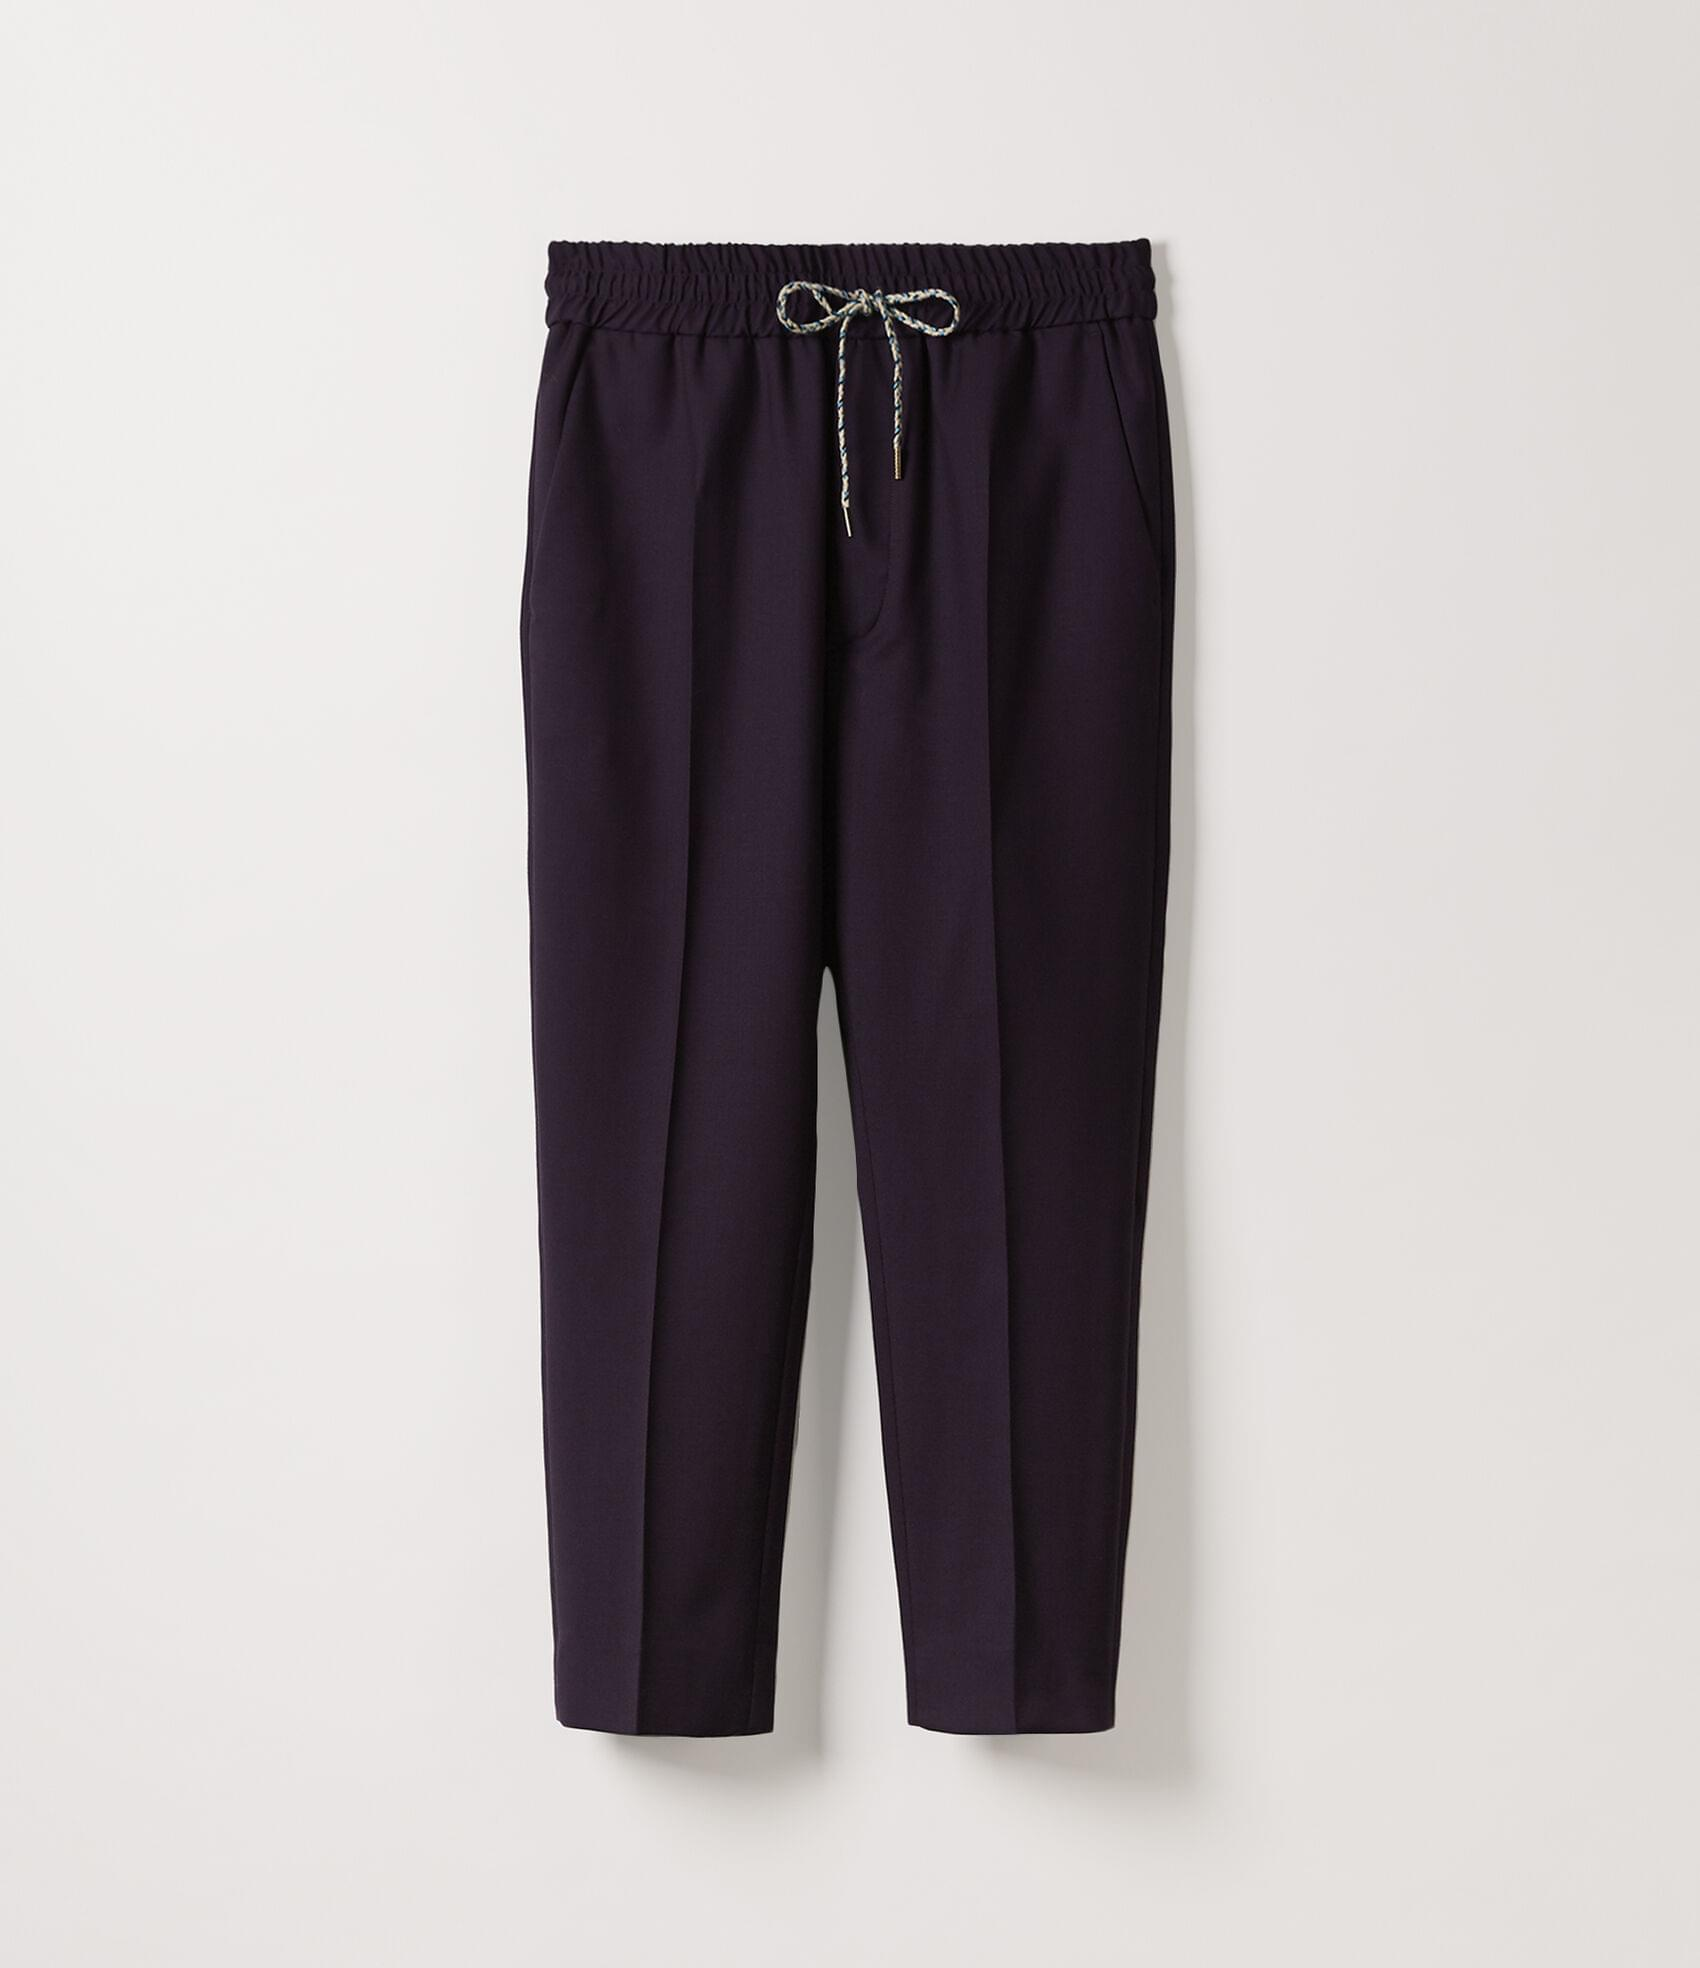 Vivienne Westwood ELASTIC CROPPED GEORGE TROUSERS DARK PURPLE